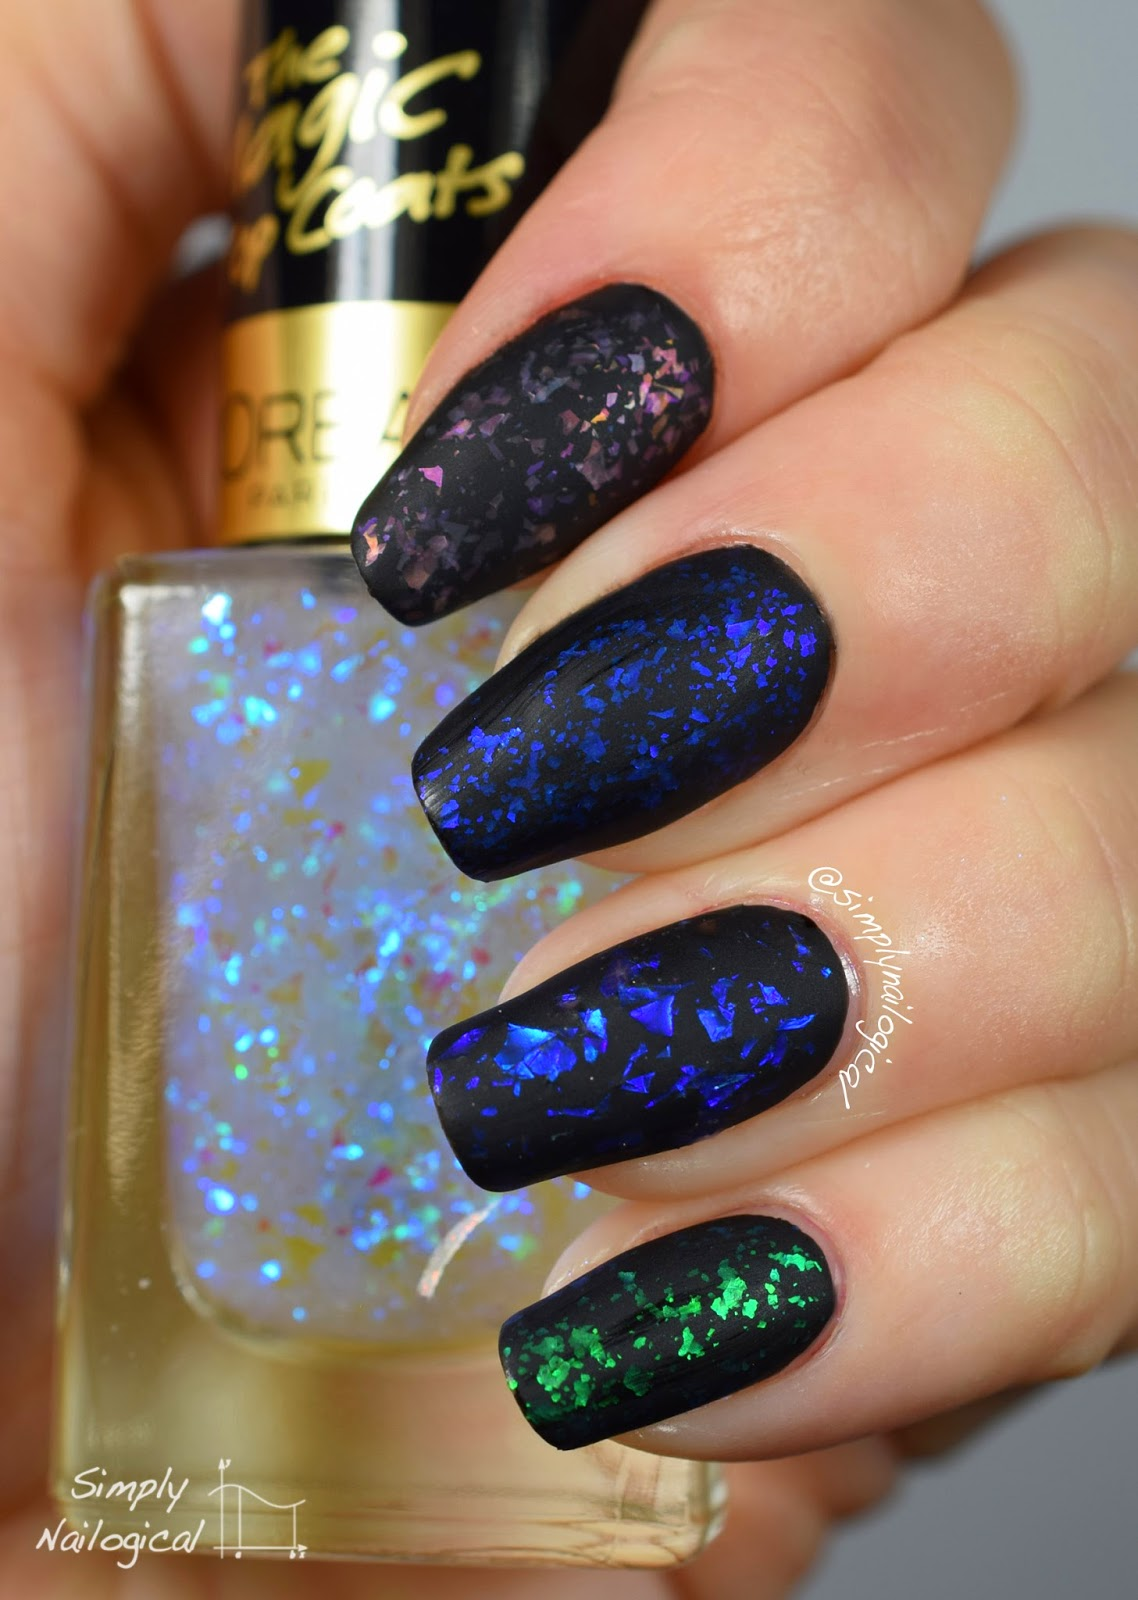 Simply Nailogical Matte Flakie Skittle Over Black For Mcpolish